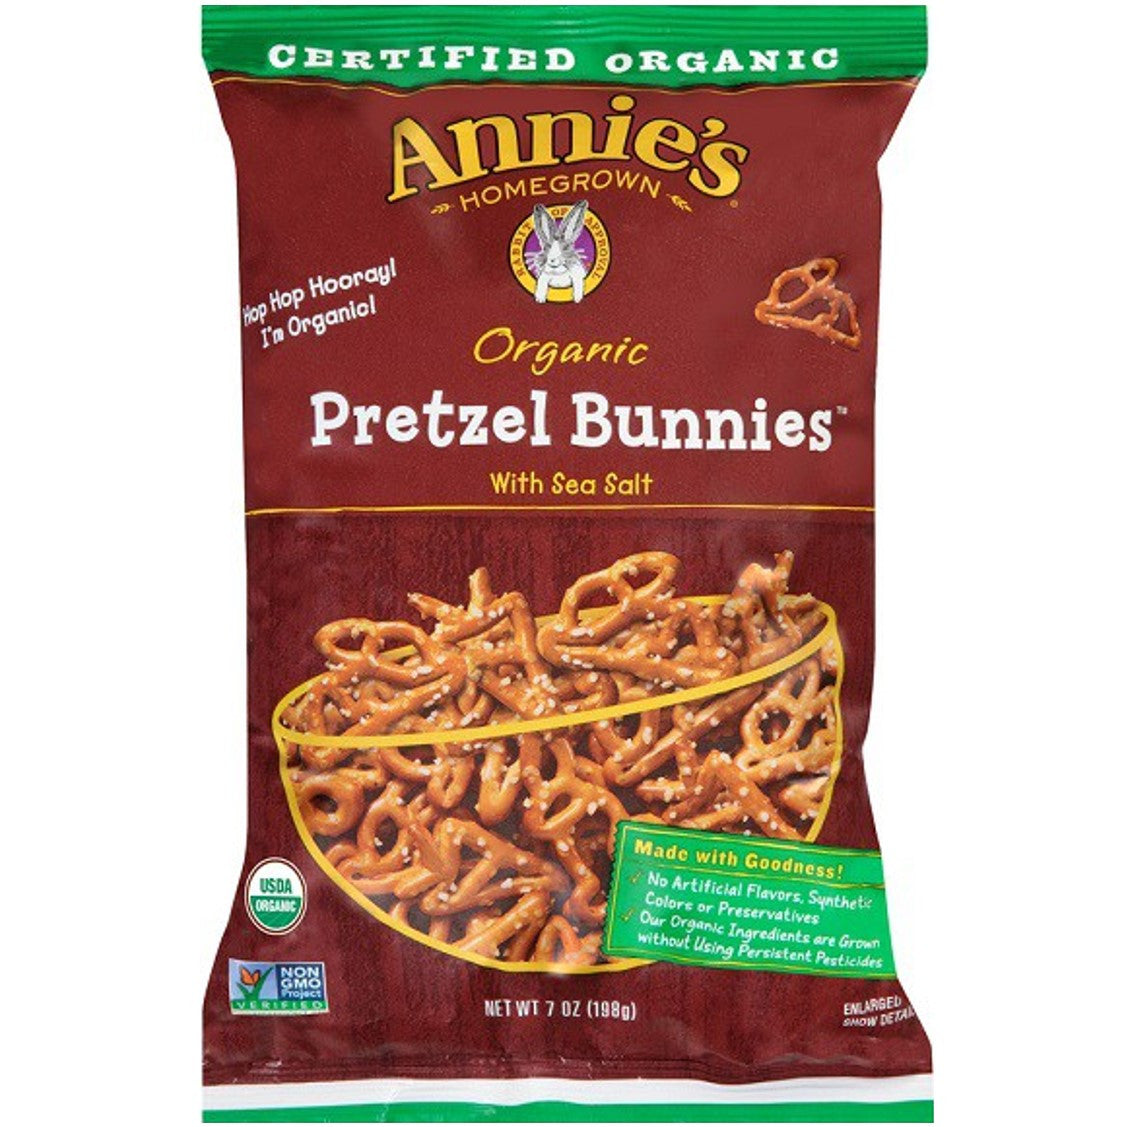 Annie's Homegrown Organic Pretzel Bunnies - Original, 198g.